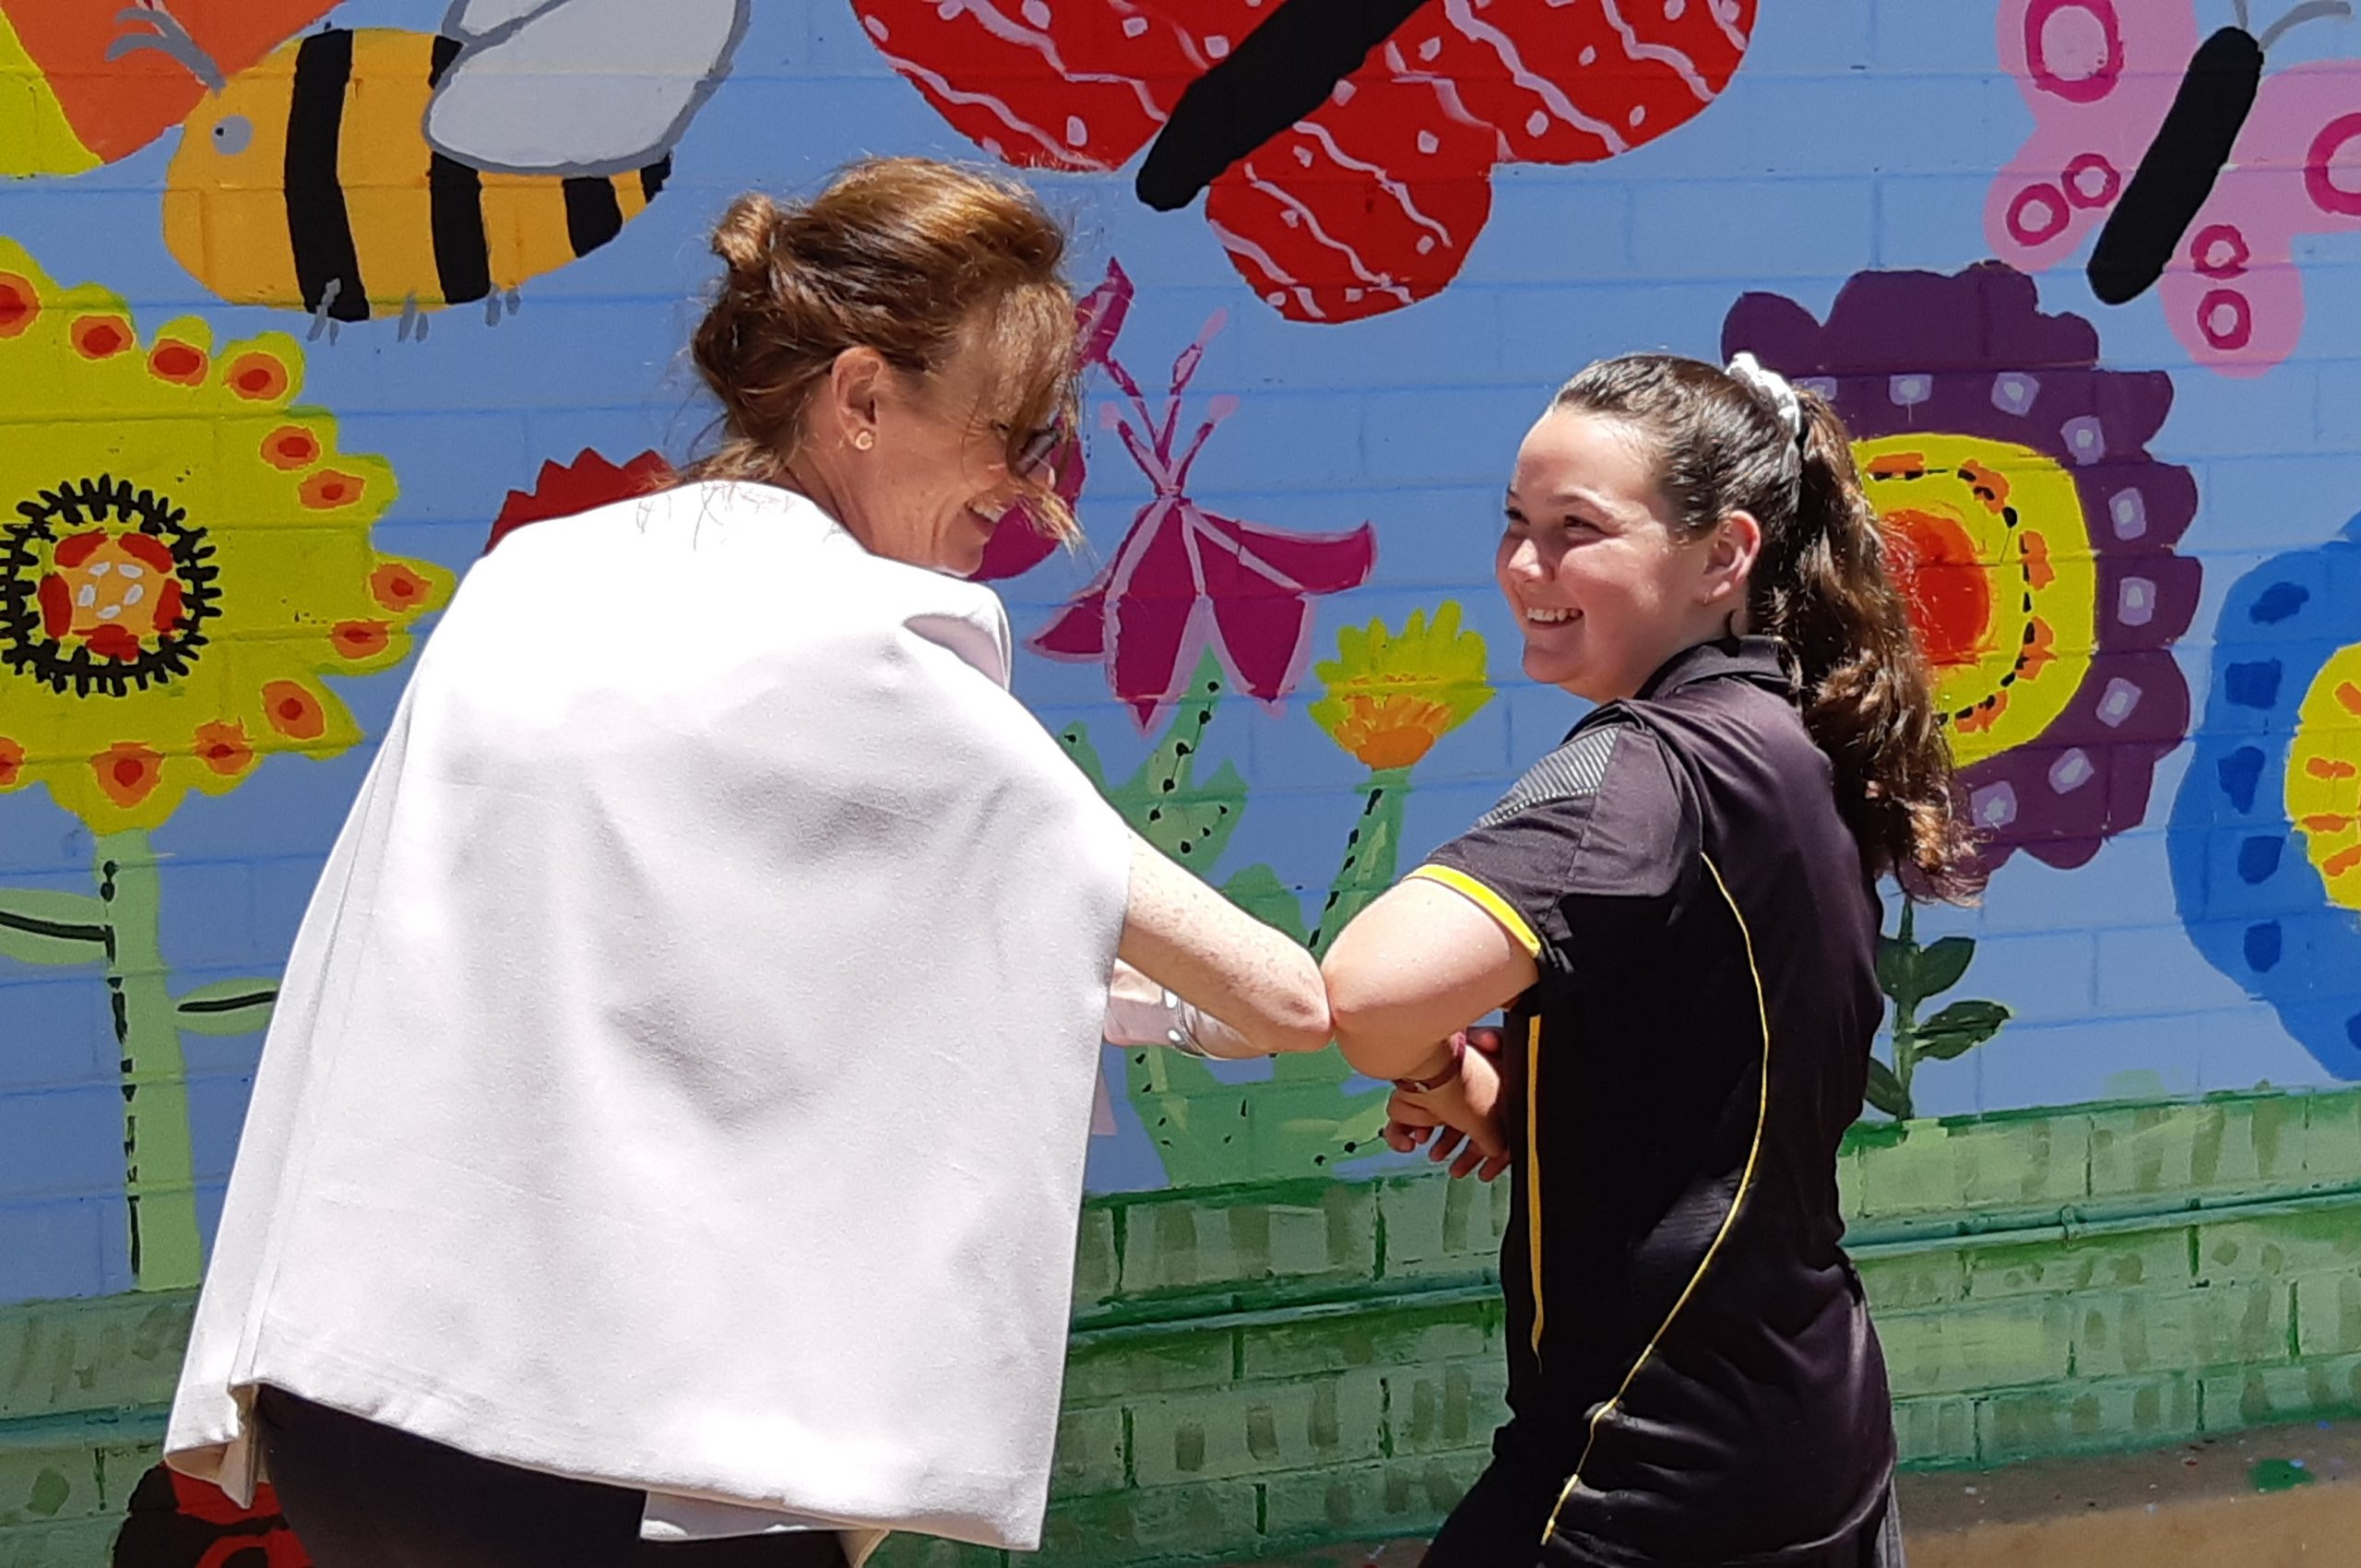 Steph Cooke and a female student bump elbows in front of a brightly painted wall with large flowers, butterflies and bees.